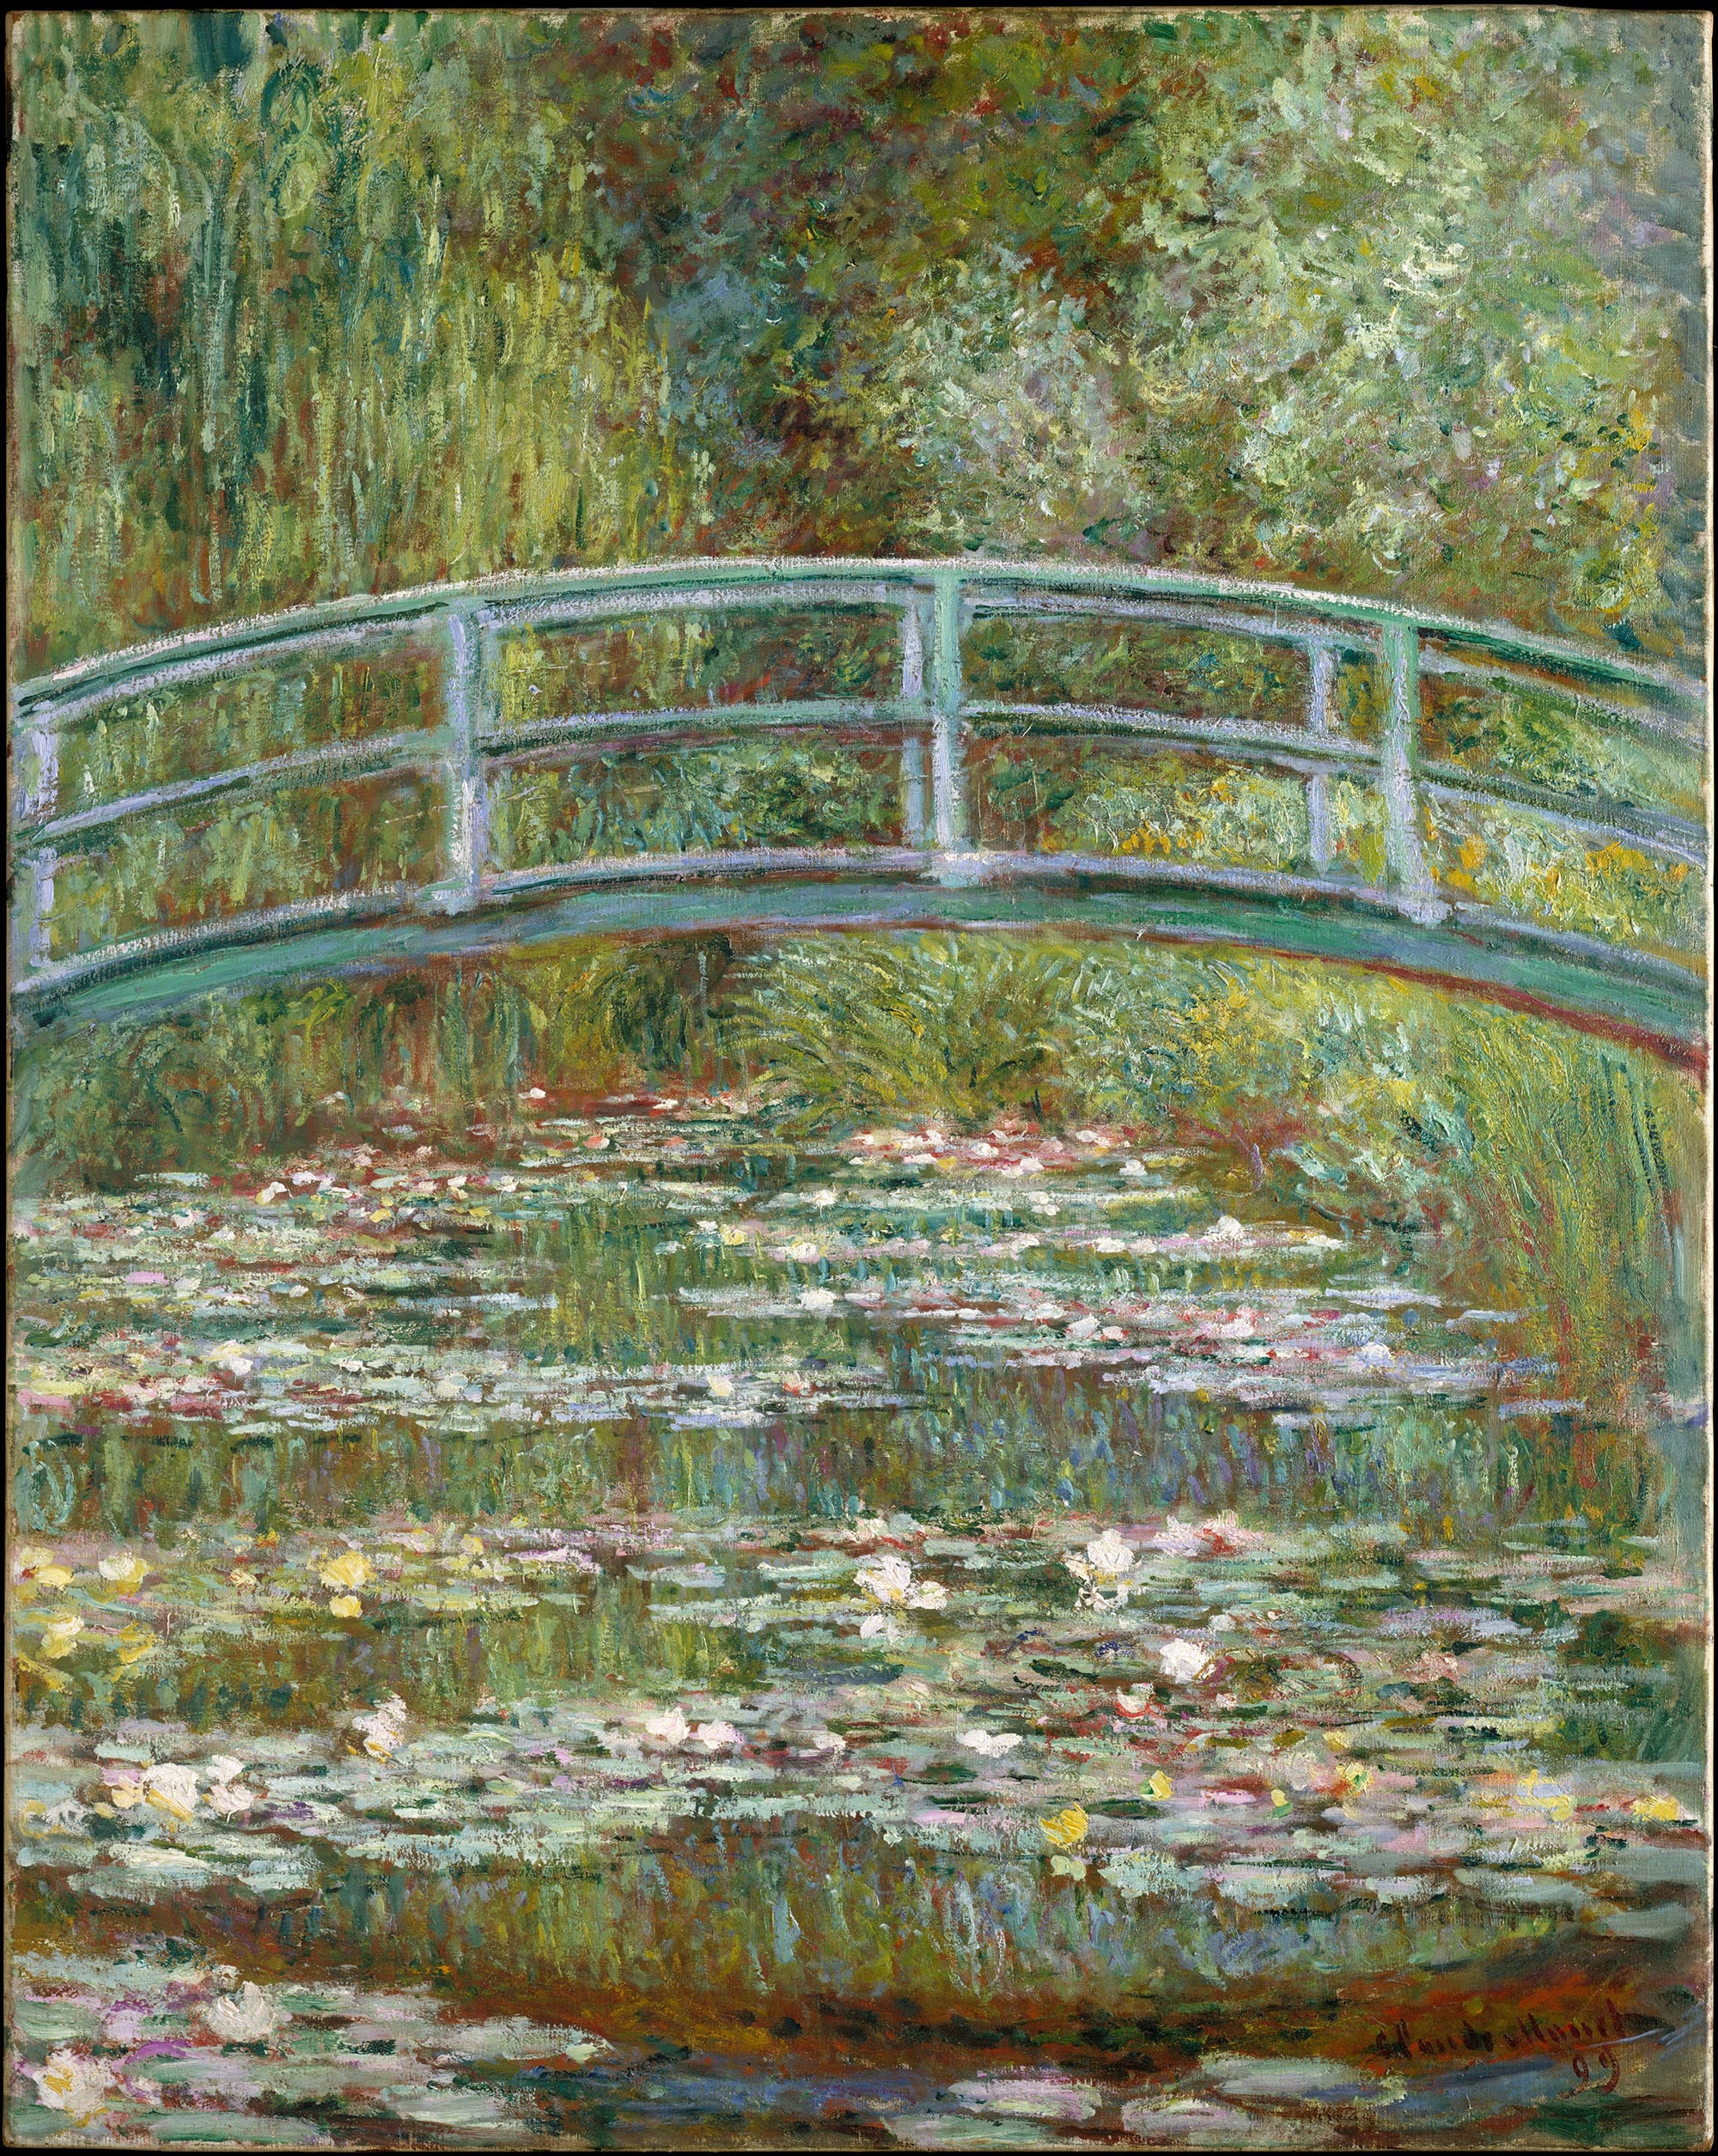 """You can visit the pond featured in """"Bridge Over a Pond of Water Lilies"""" at Monet's home in Giverny."""